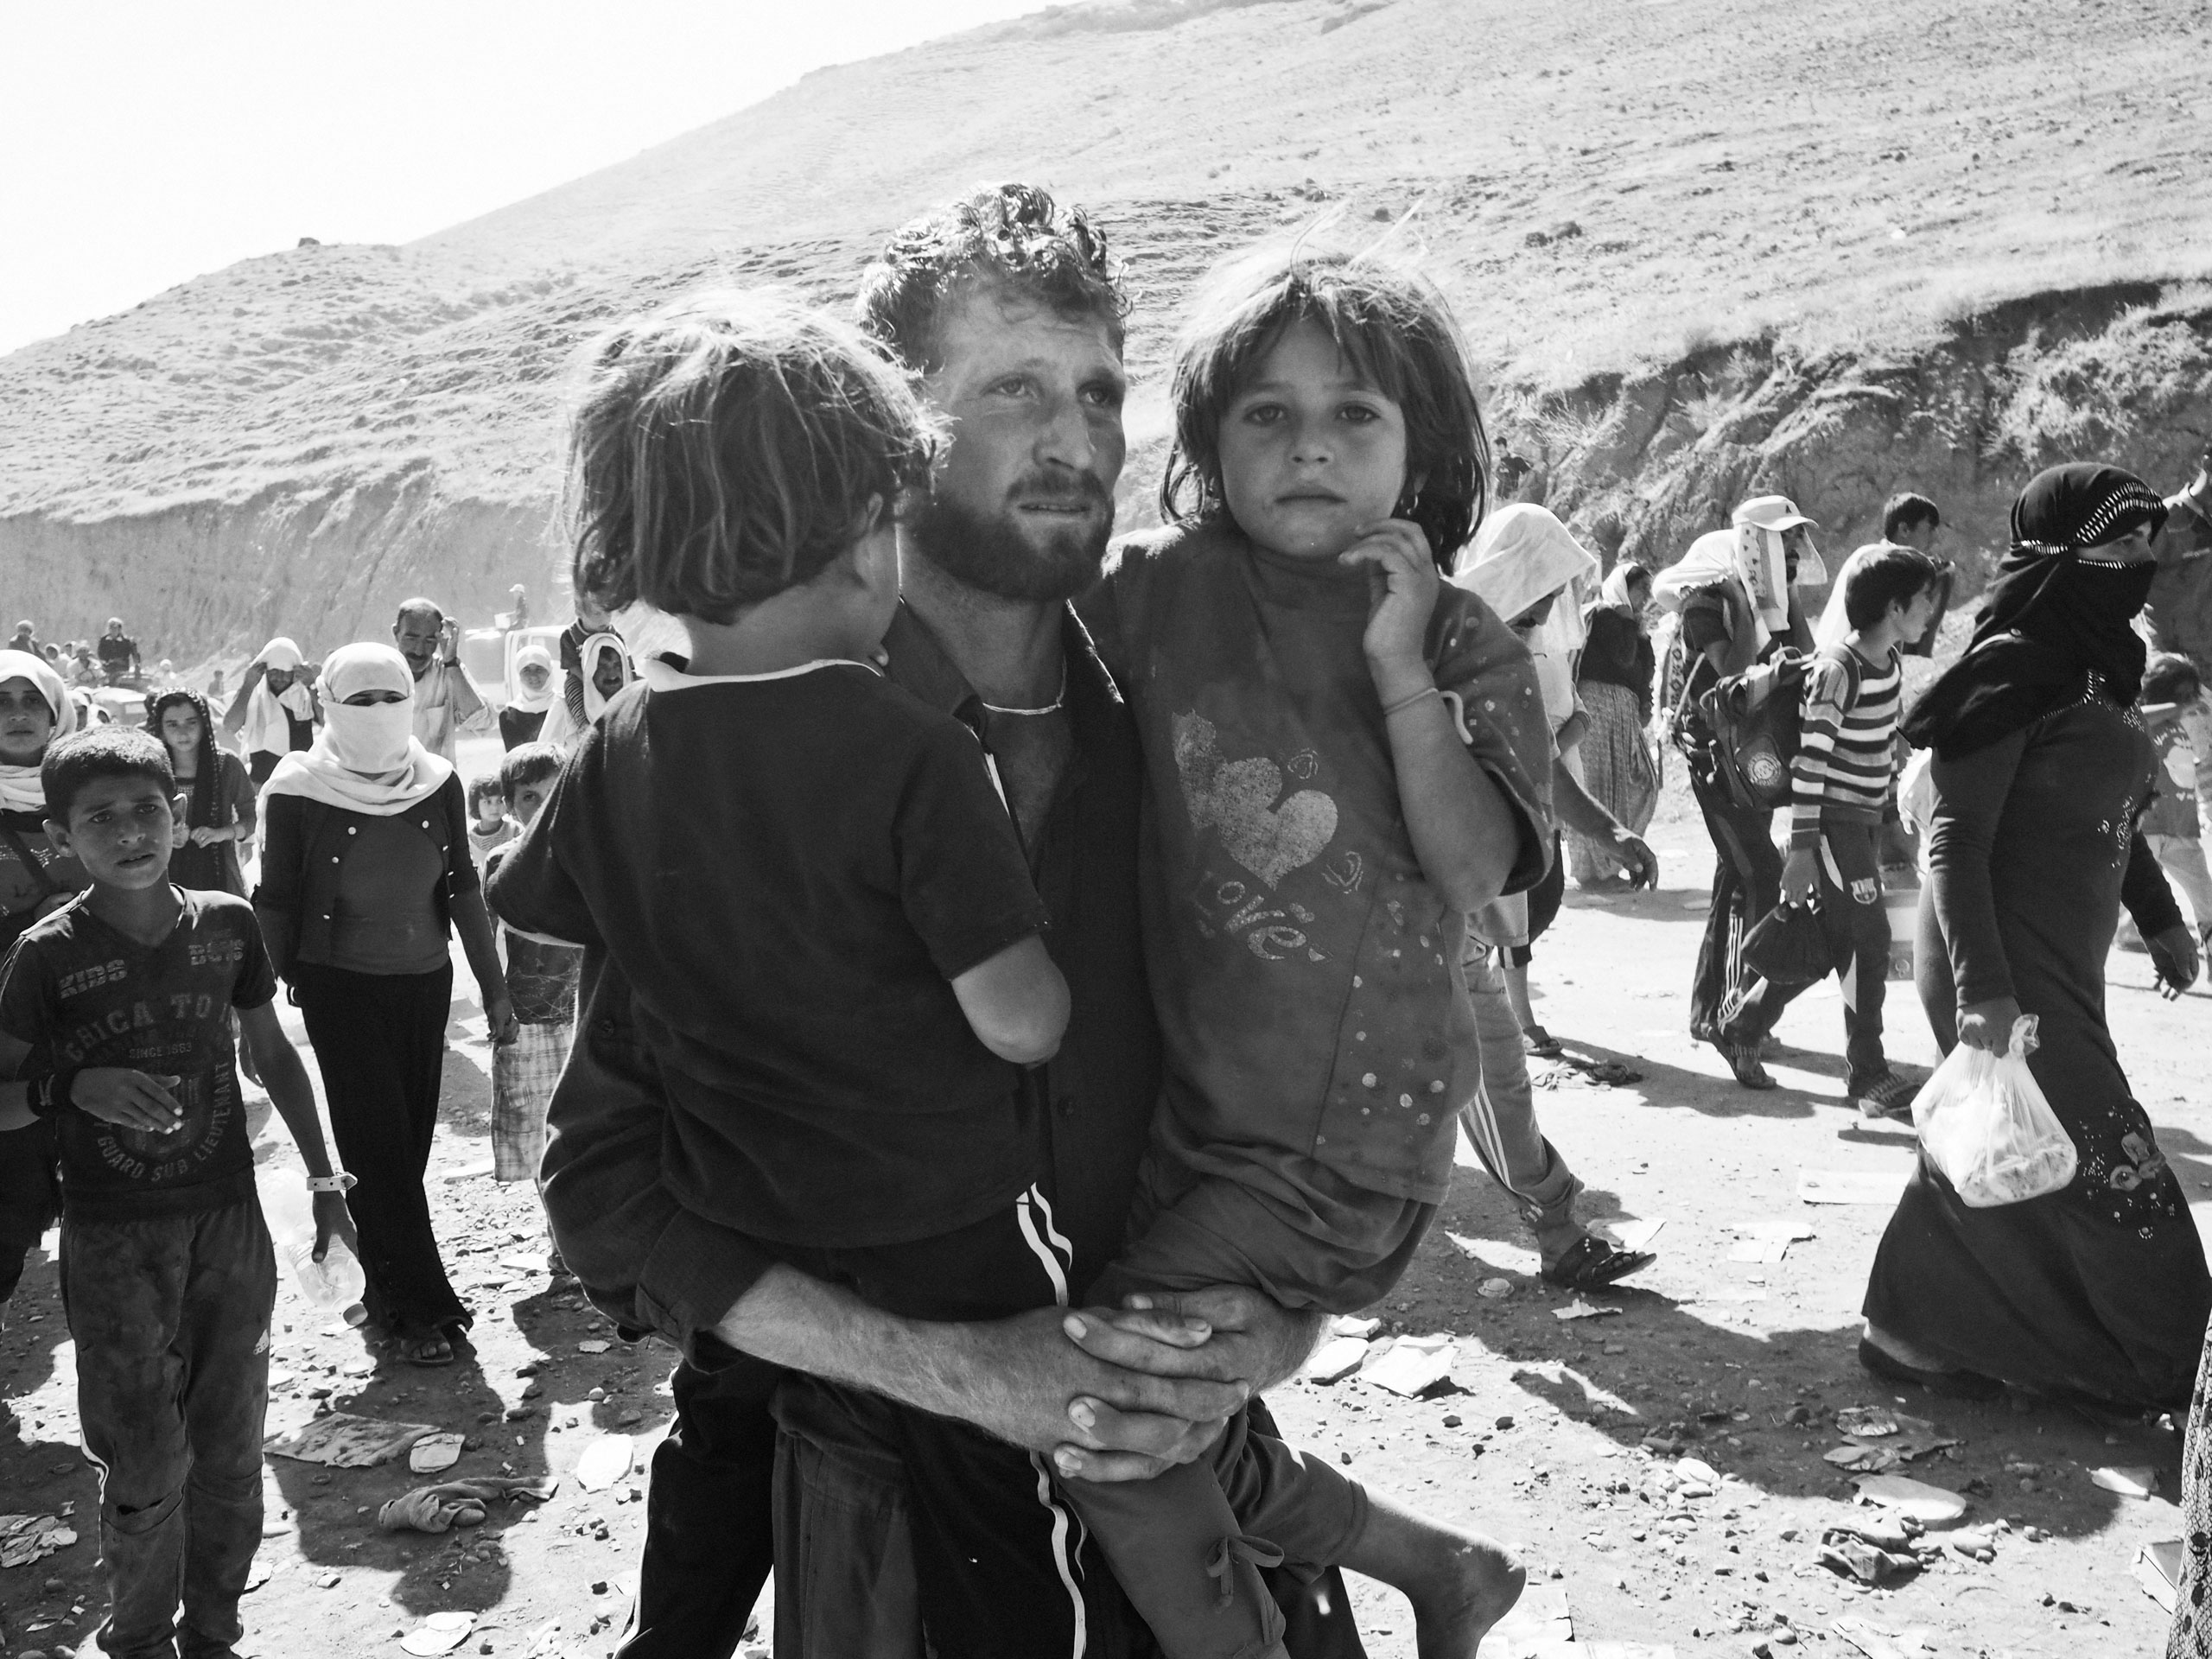 A displaced Yezidi man carries his two daughters as he crosses the border into Kurdish-controlled northern Iraq near the village of Fishkhabur. Iraq. Aug. 10, 2014.